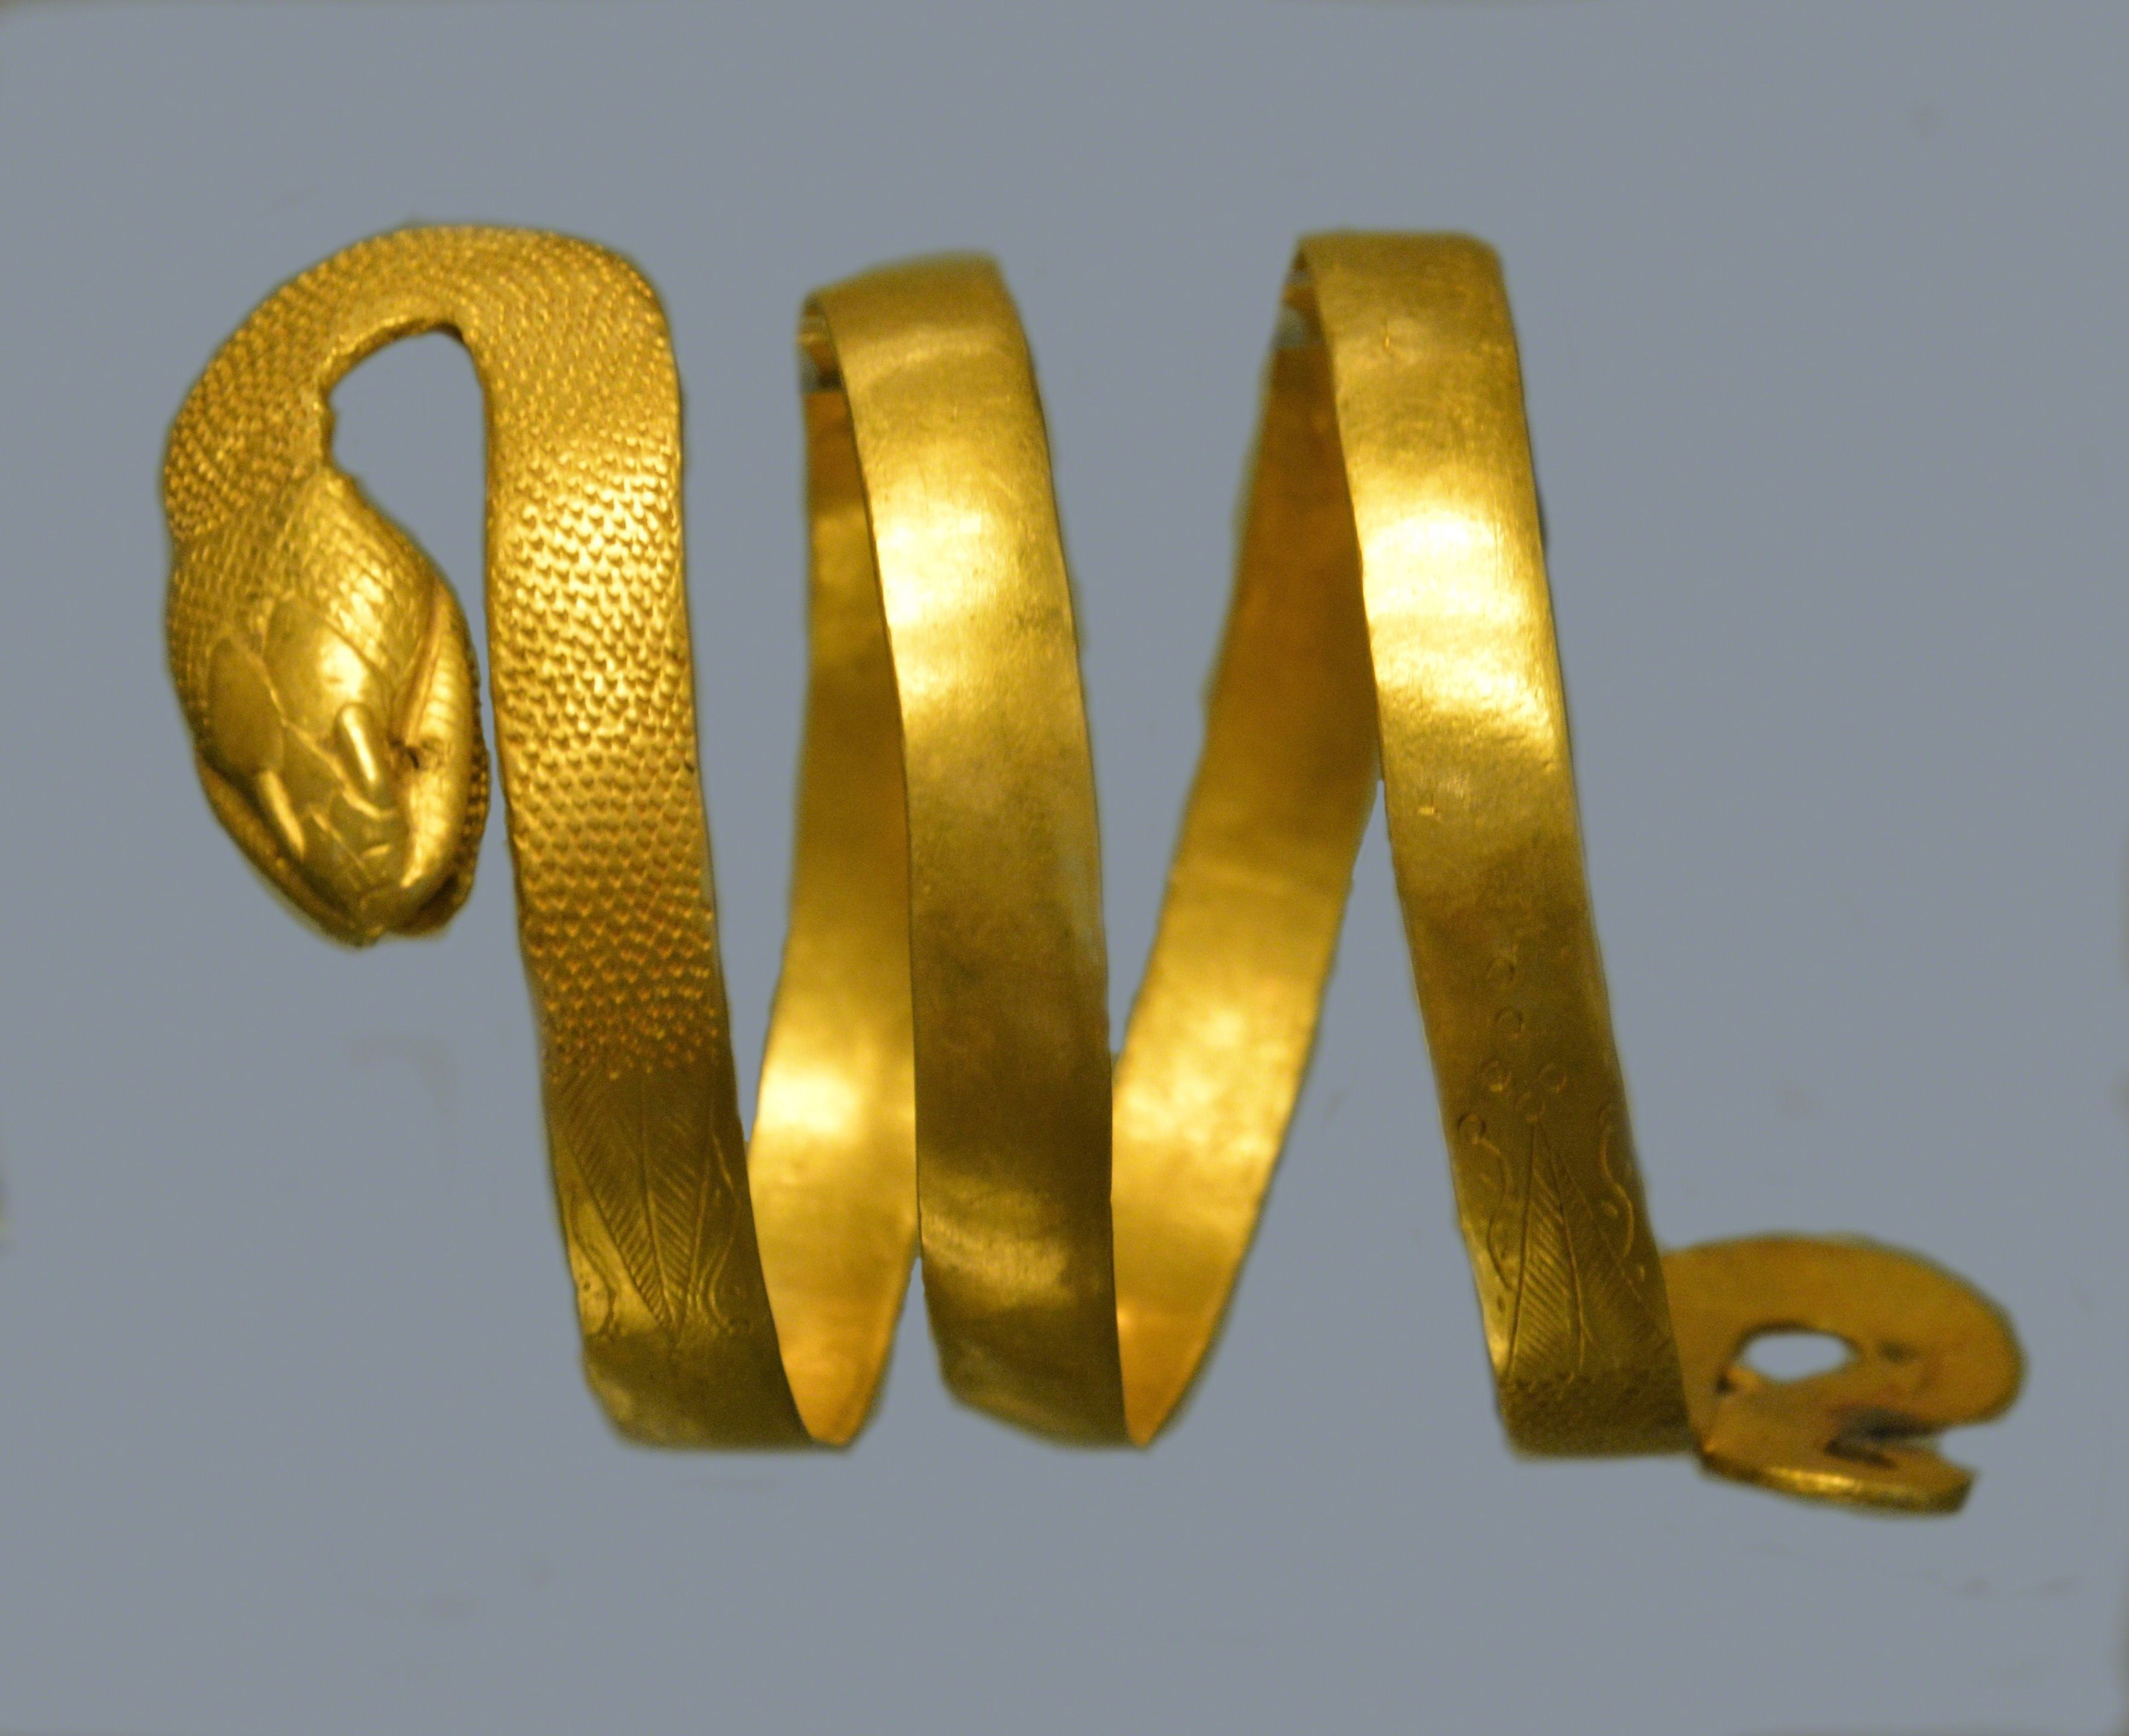 Gold bracelet in the shape of a snake.